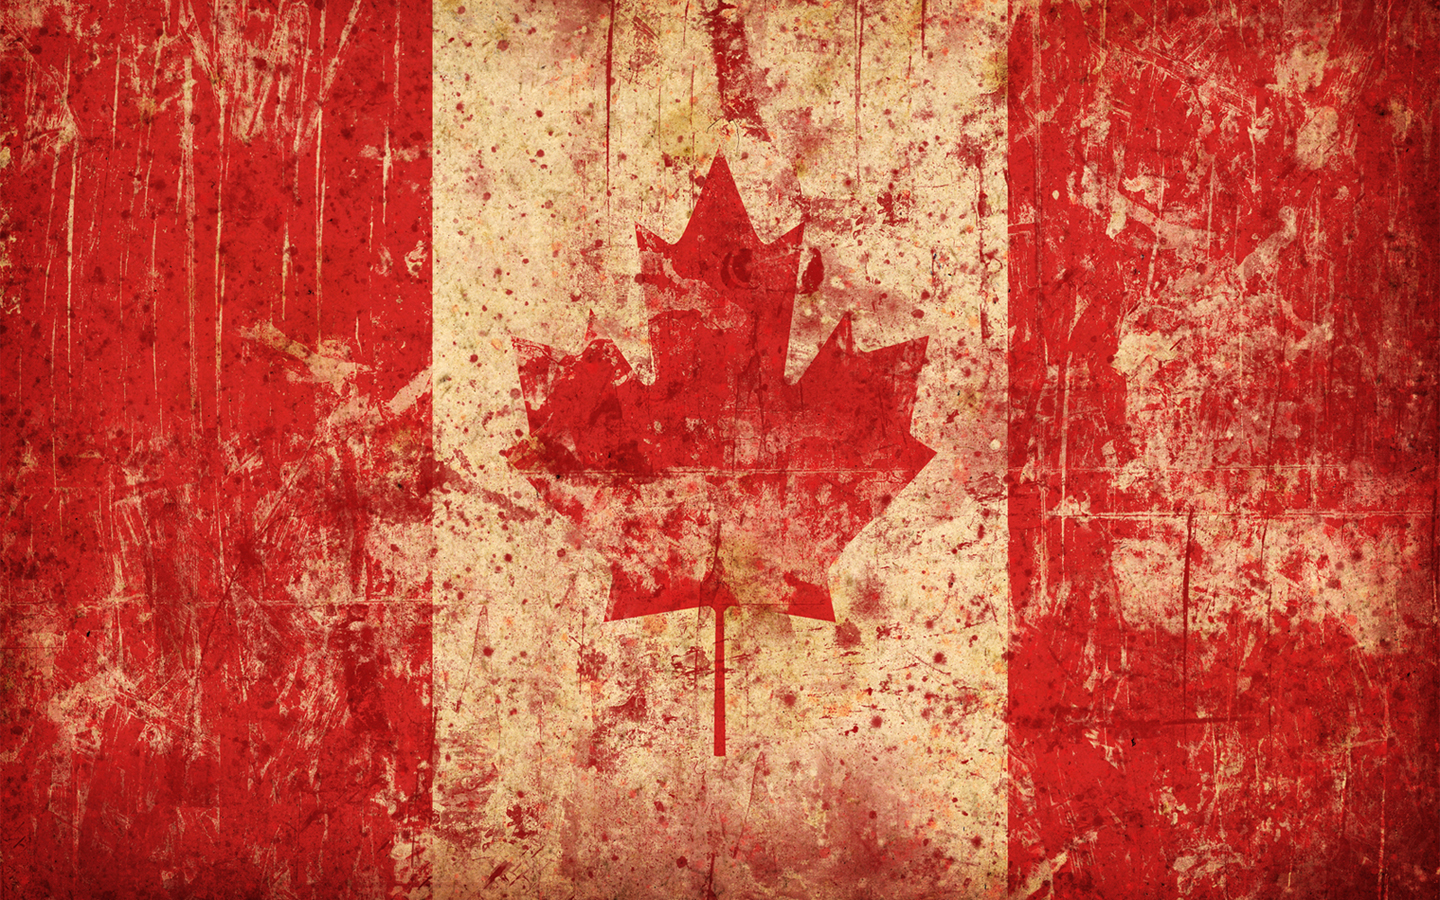 Canada Wallpaper 1440x900 Grunge Canada Flags Maple Leaf Canadian 1440x900